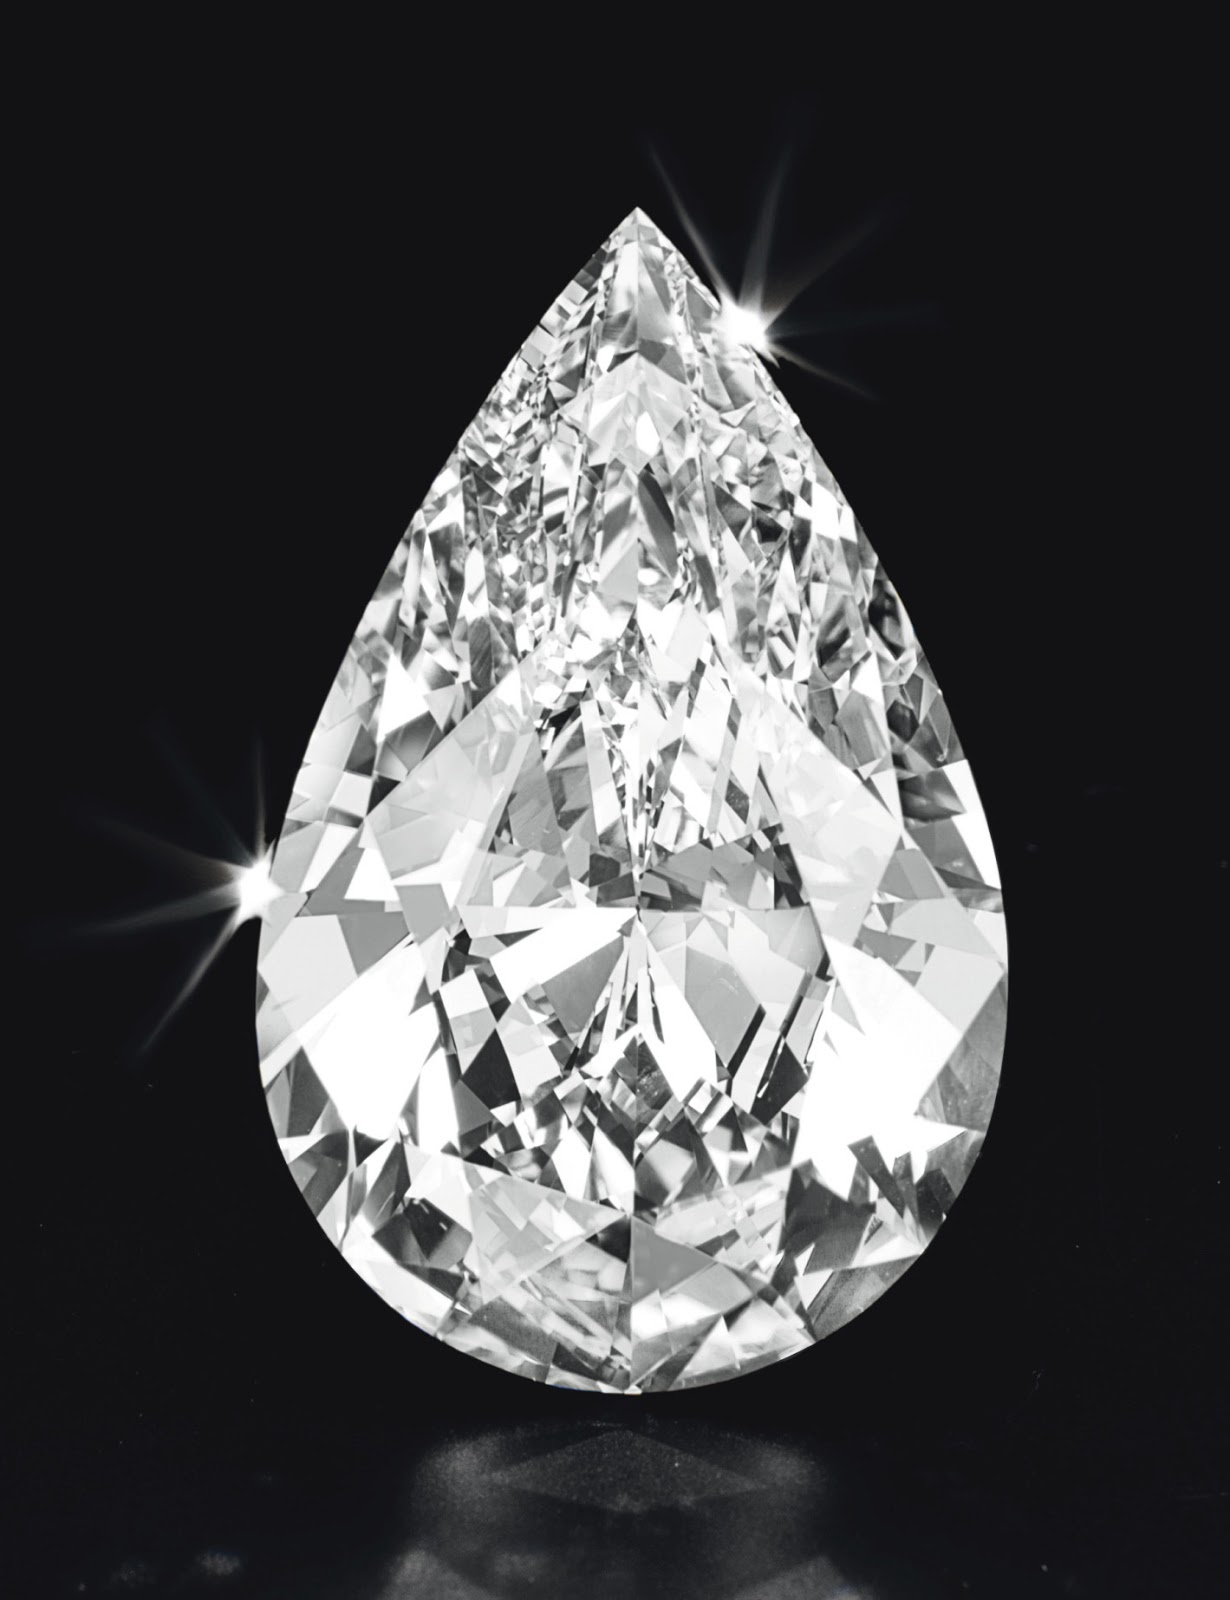 50 Carat Flawless Diamond S For 9 5 Million